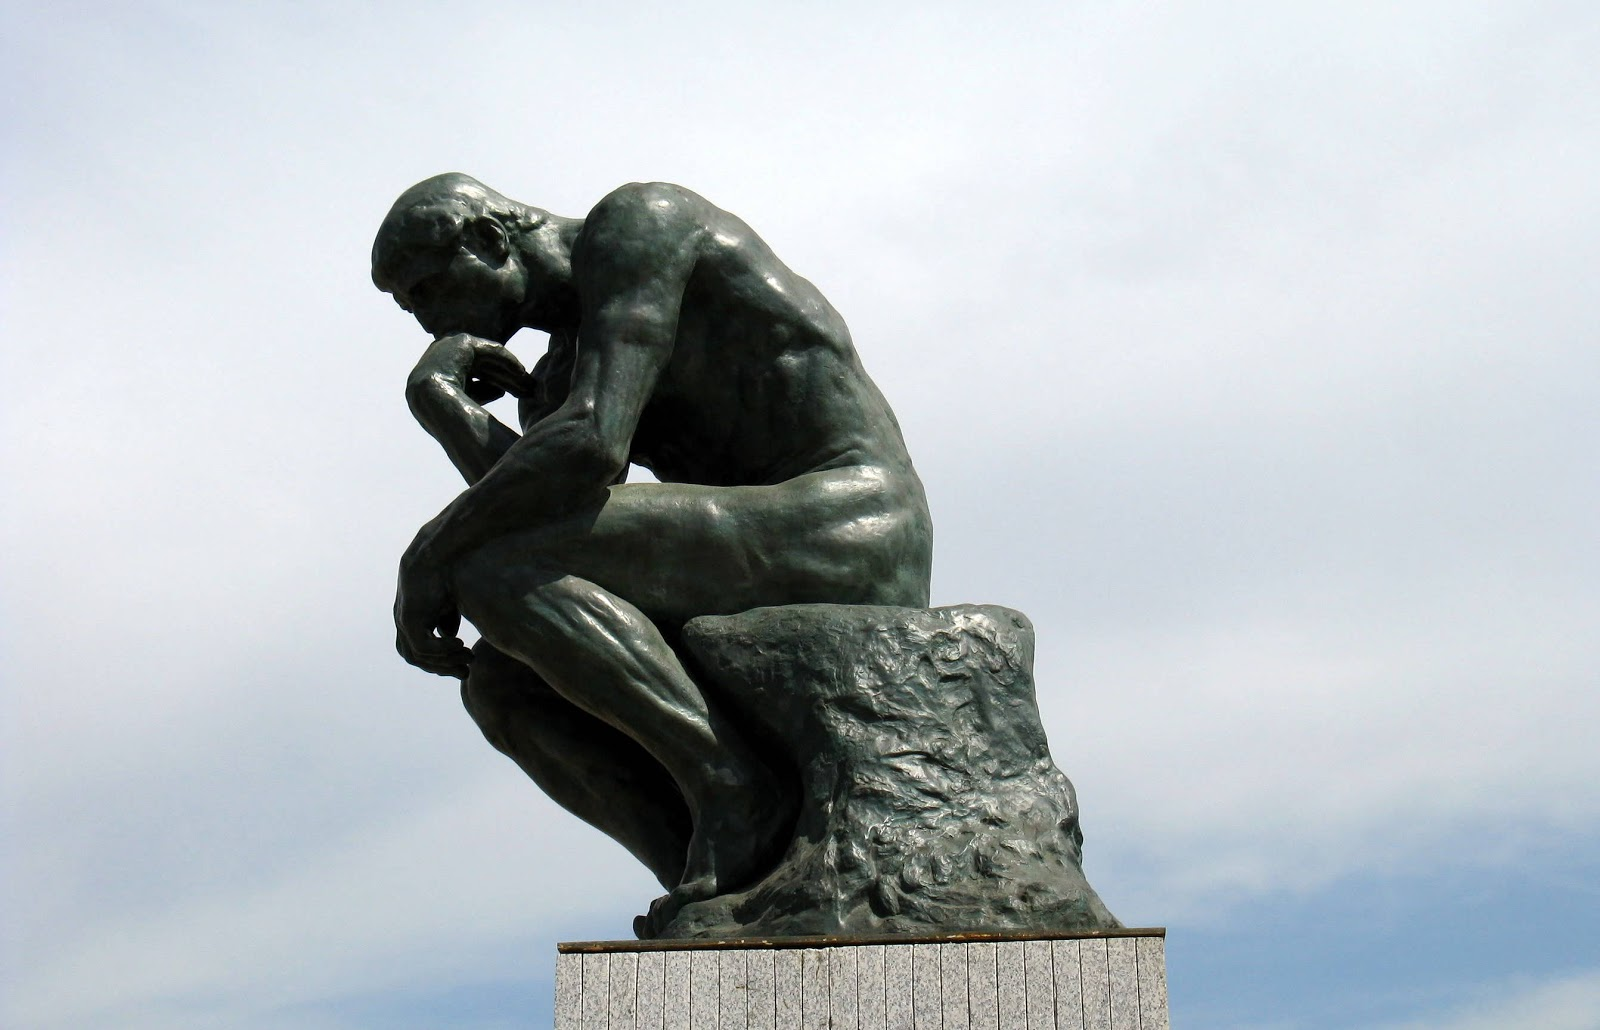 Changchun World Sculpture Park, rodin's thinker